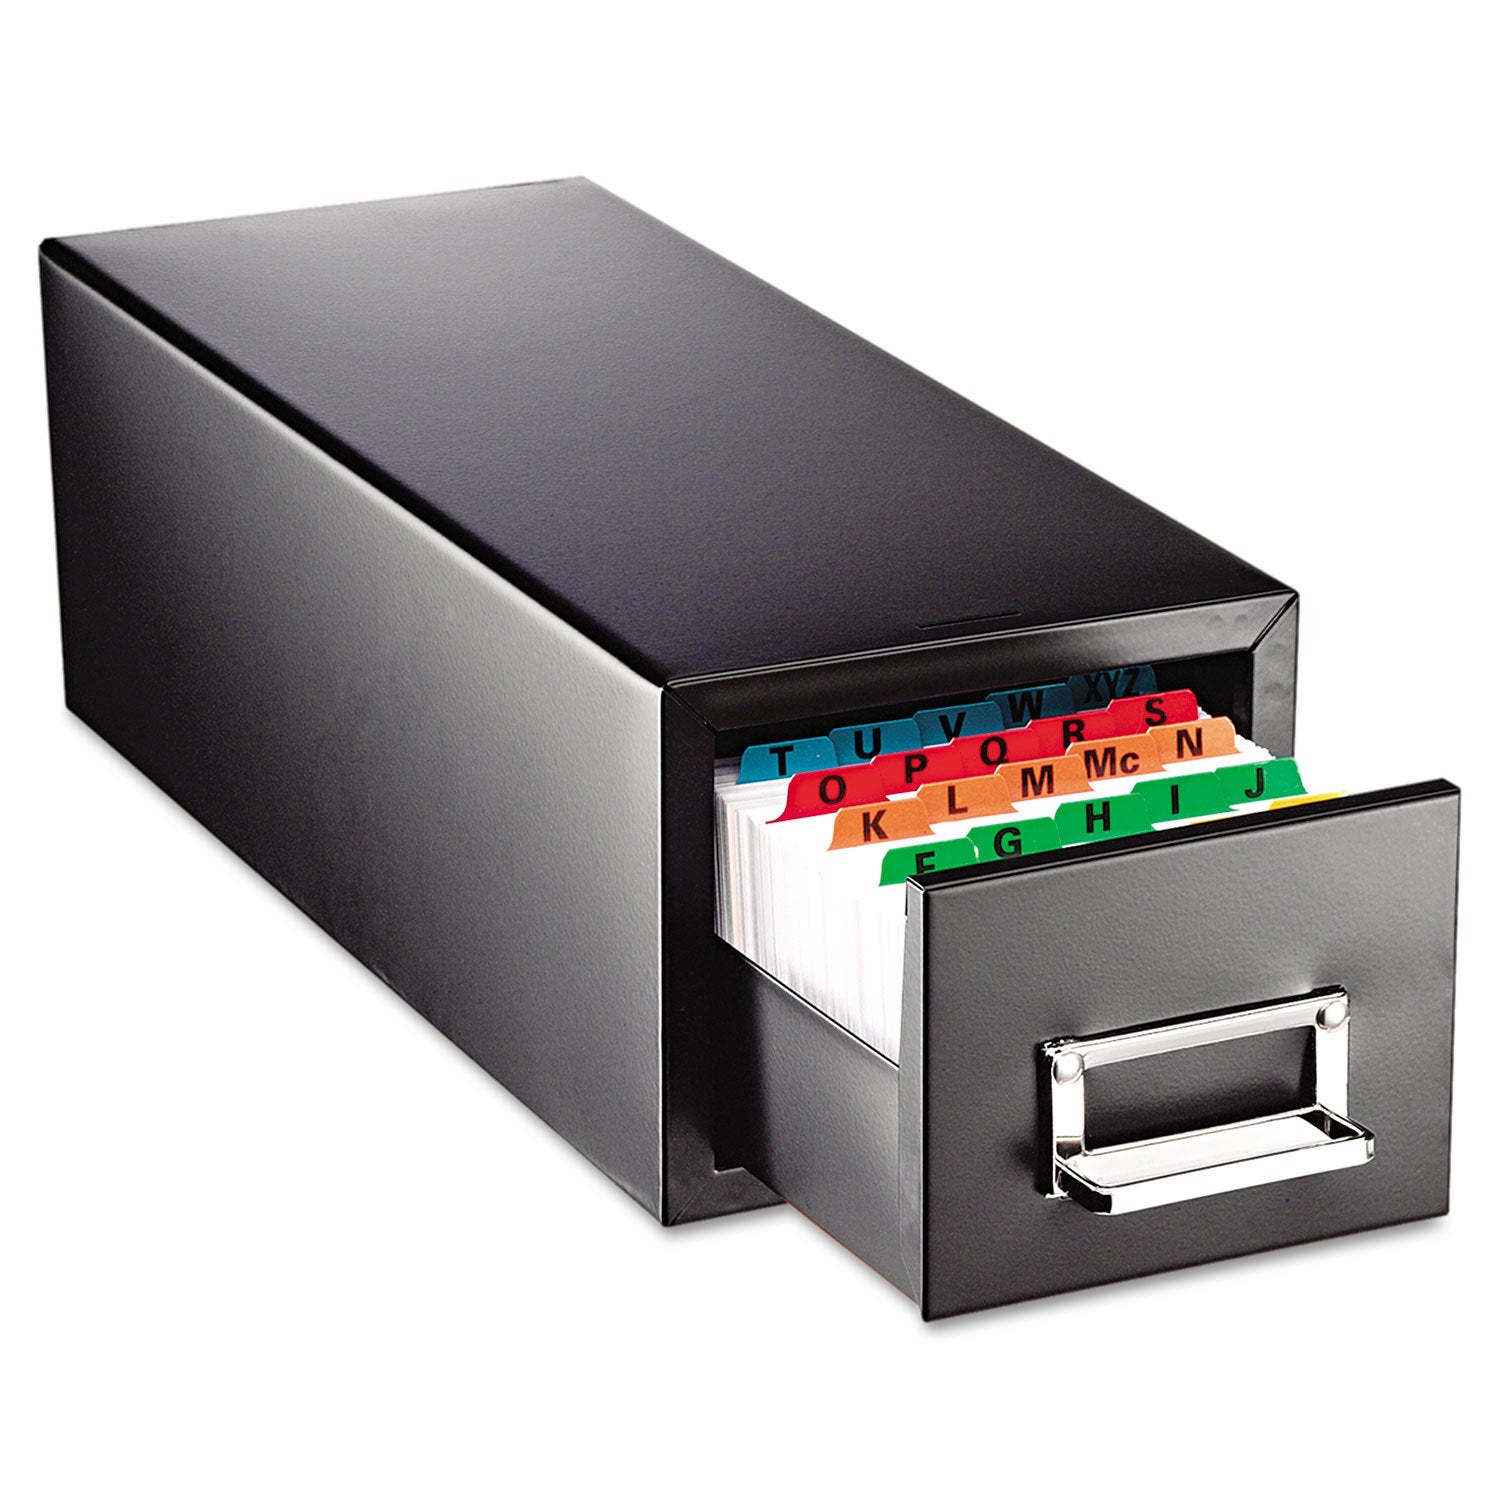 SteelMaster Drawer Card Cabinet Holds 1 500 5 x 8 cards 9...